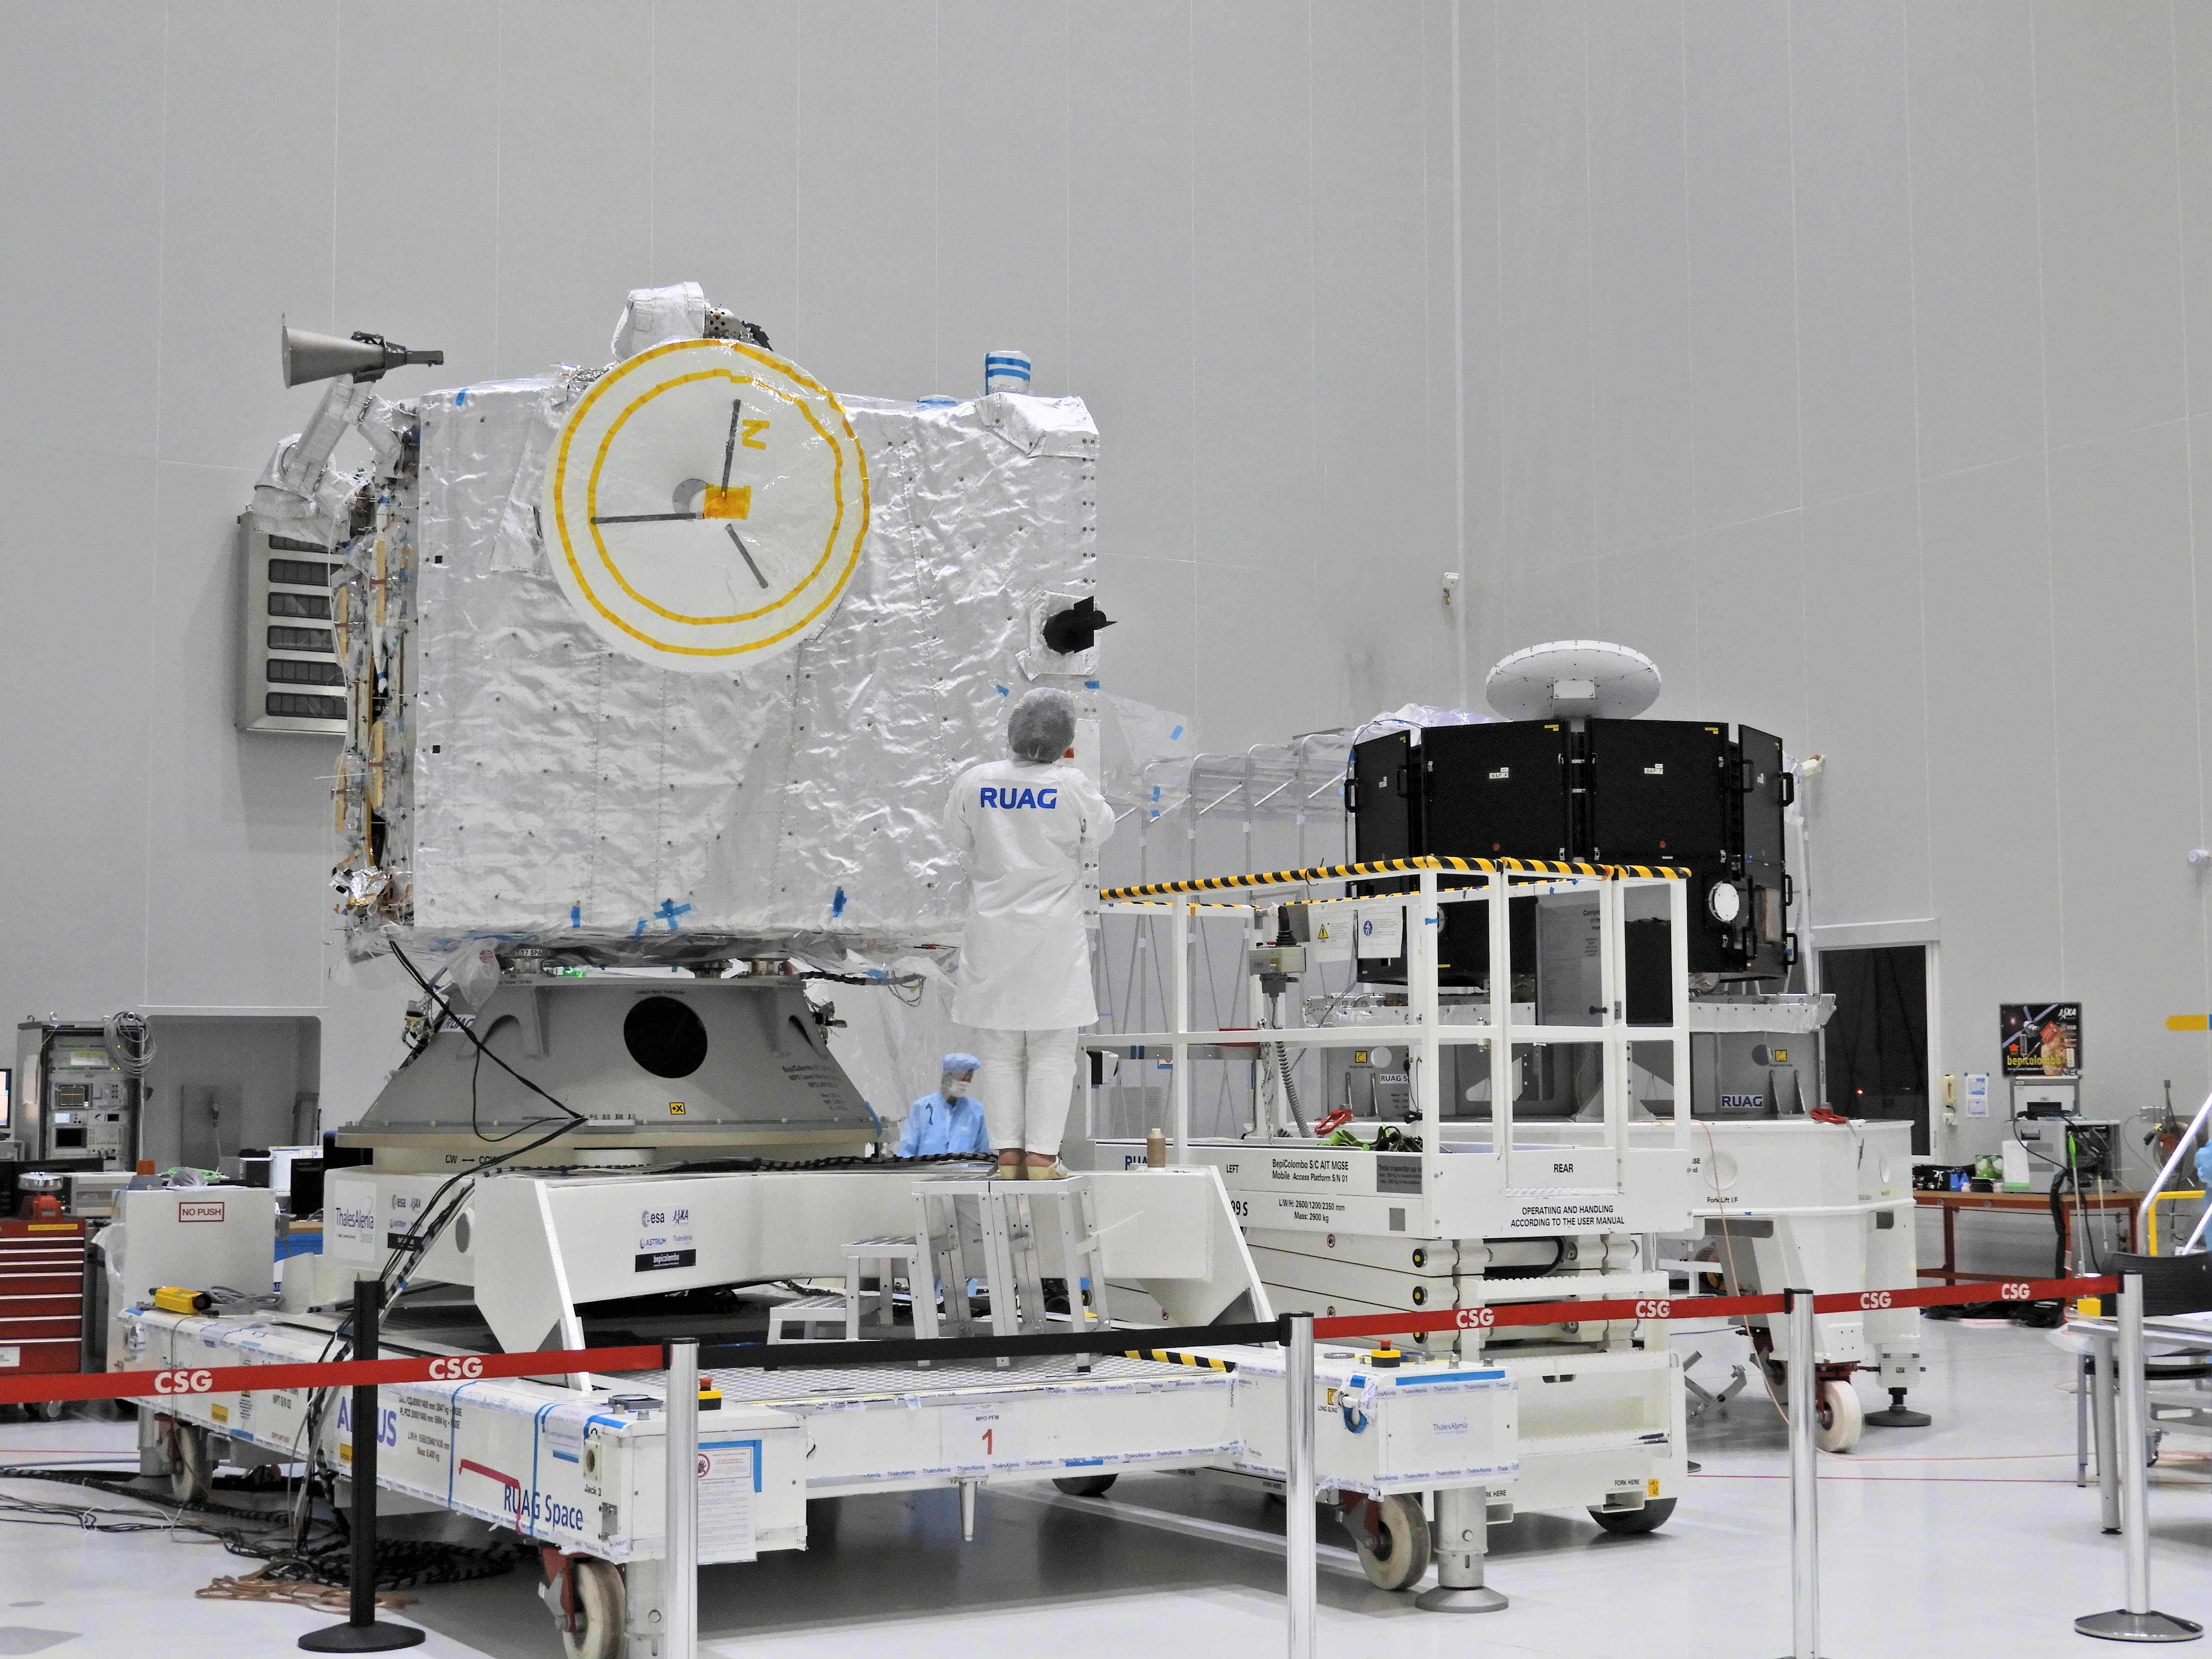 1567213889162-BepiColombo_Sewing_MPO_insulation_blankets.jpg